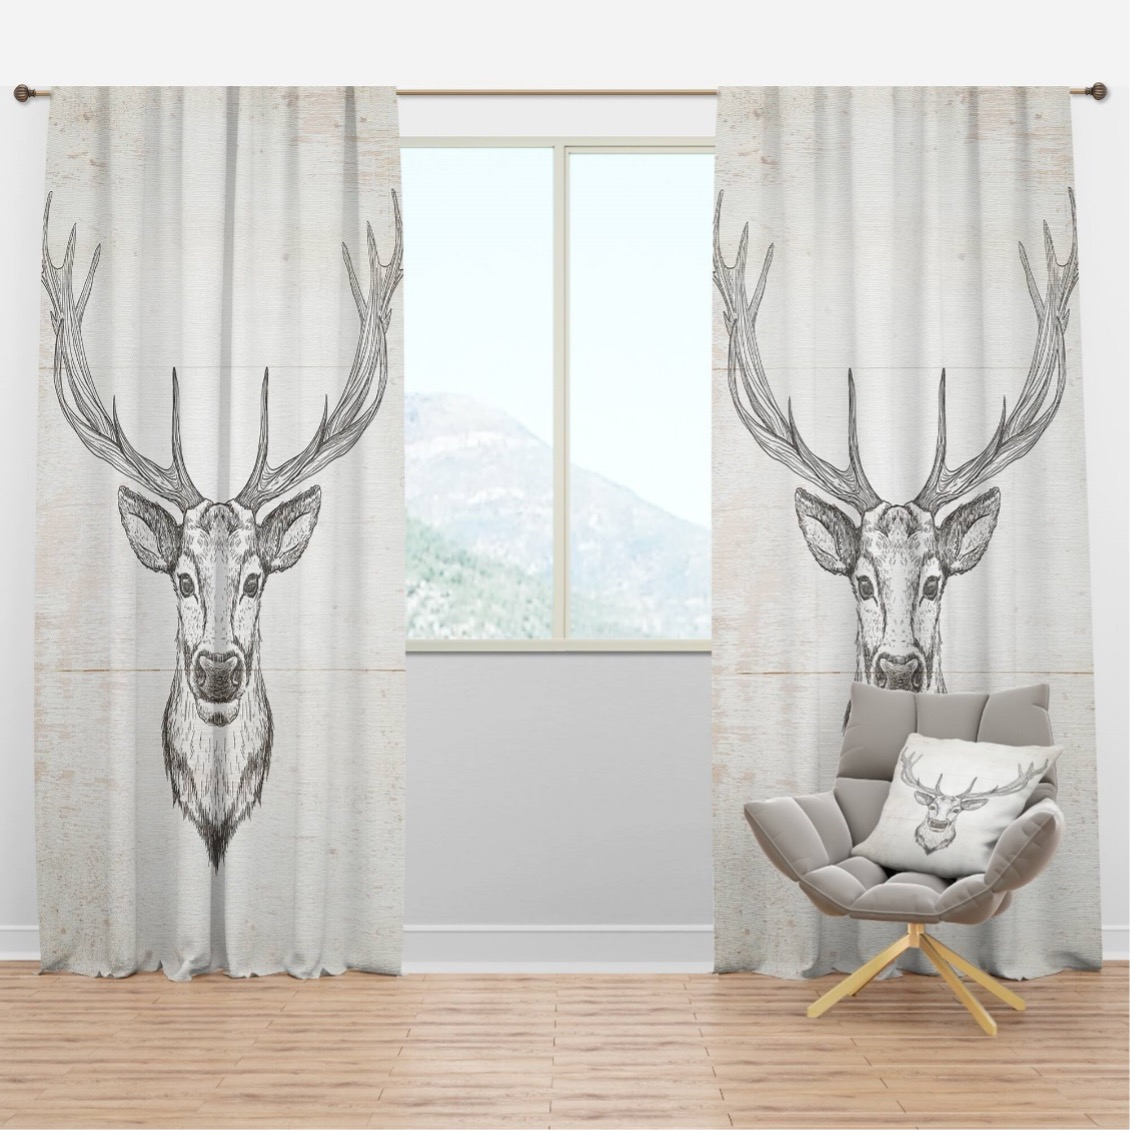 Decorate with Deer Curtain Panels